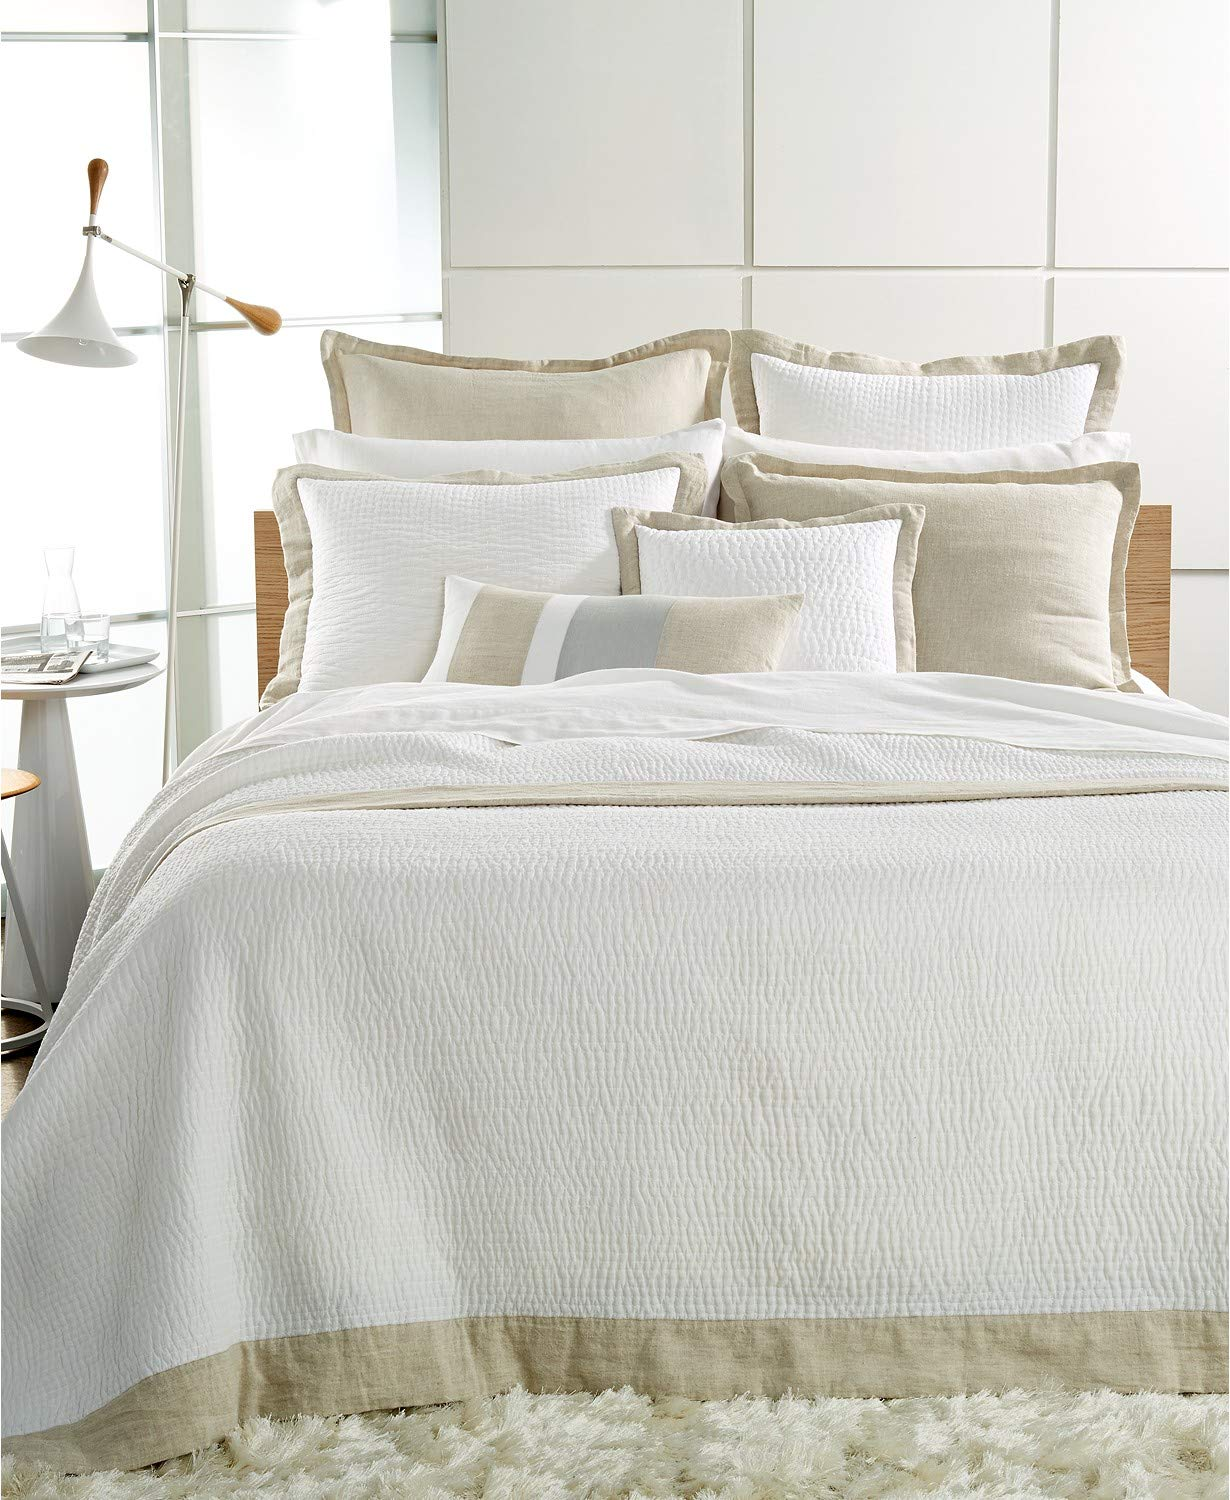 Hotel Collection Voile Quilted Cotton / Linen King Coverlet Natural